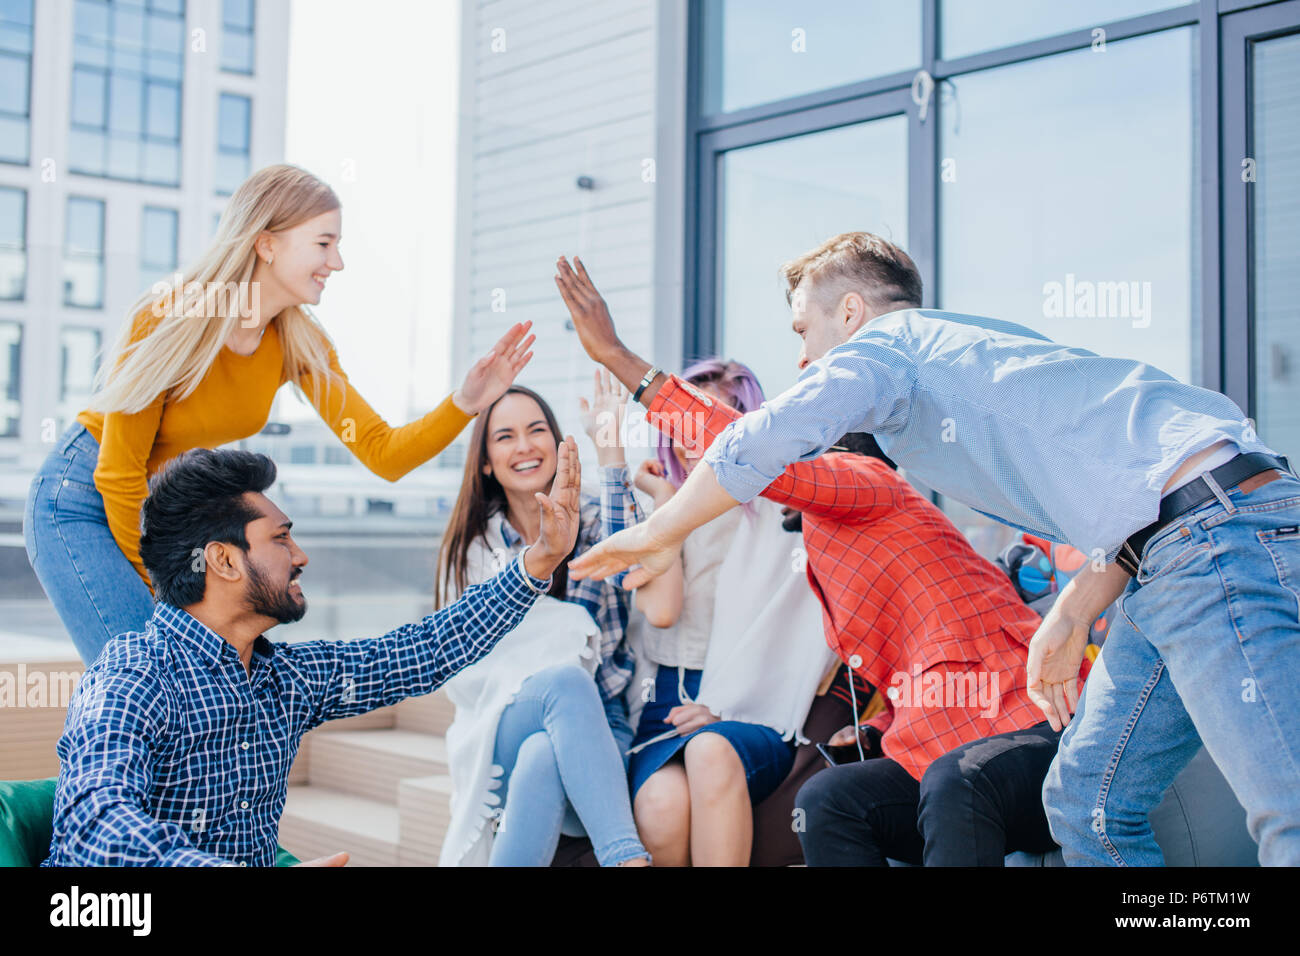 Young friends giving high five after making a good deal and earning a lot of money on marketing targeting investigation - Stock Image